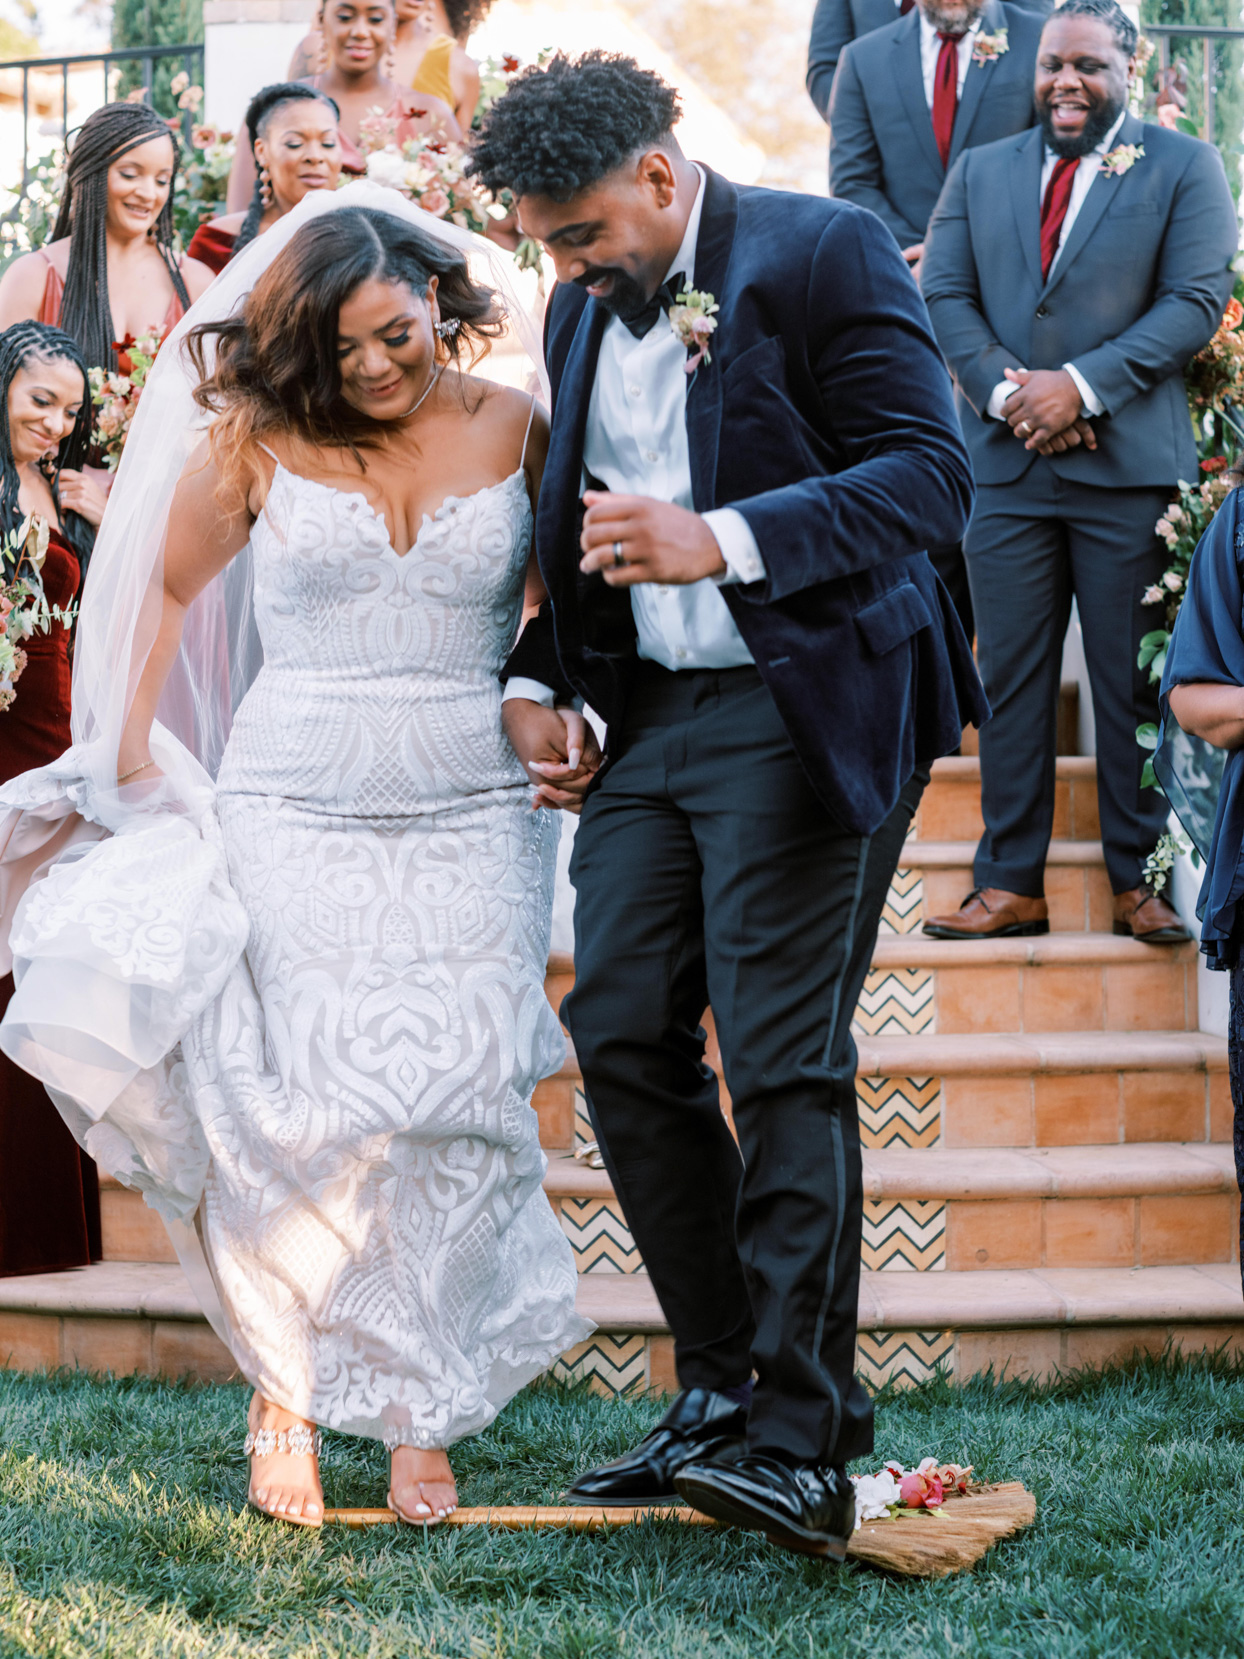 couple jumping on broom during wedding ceremony